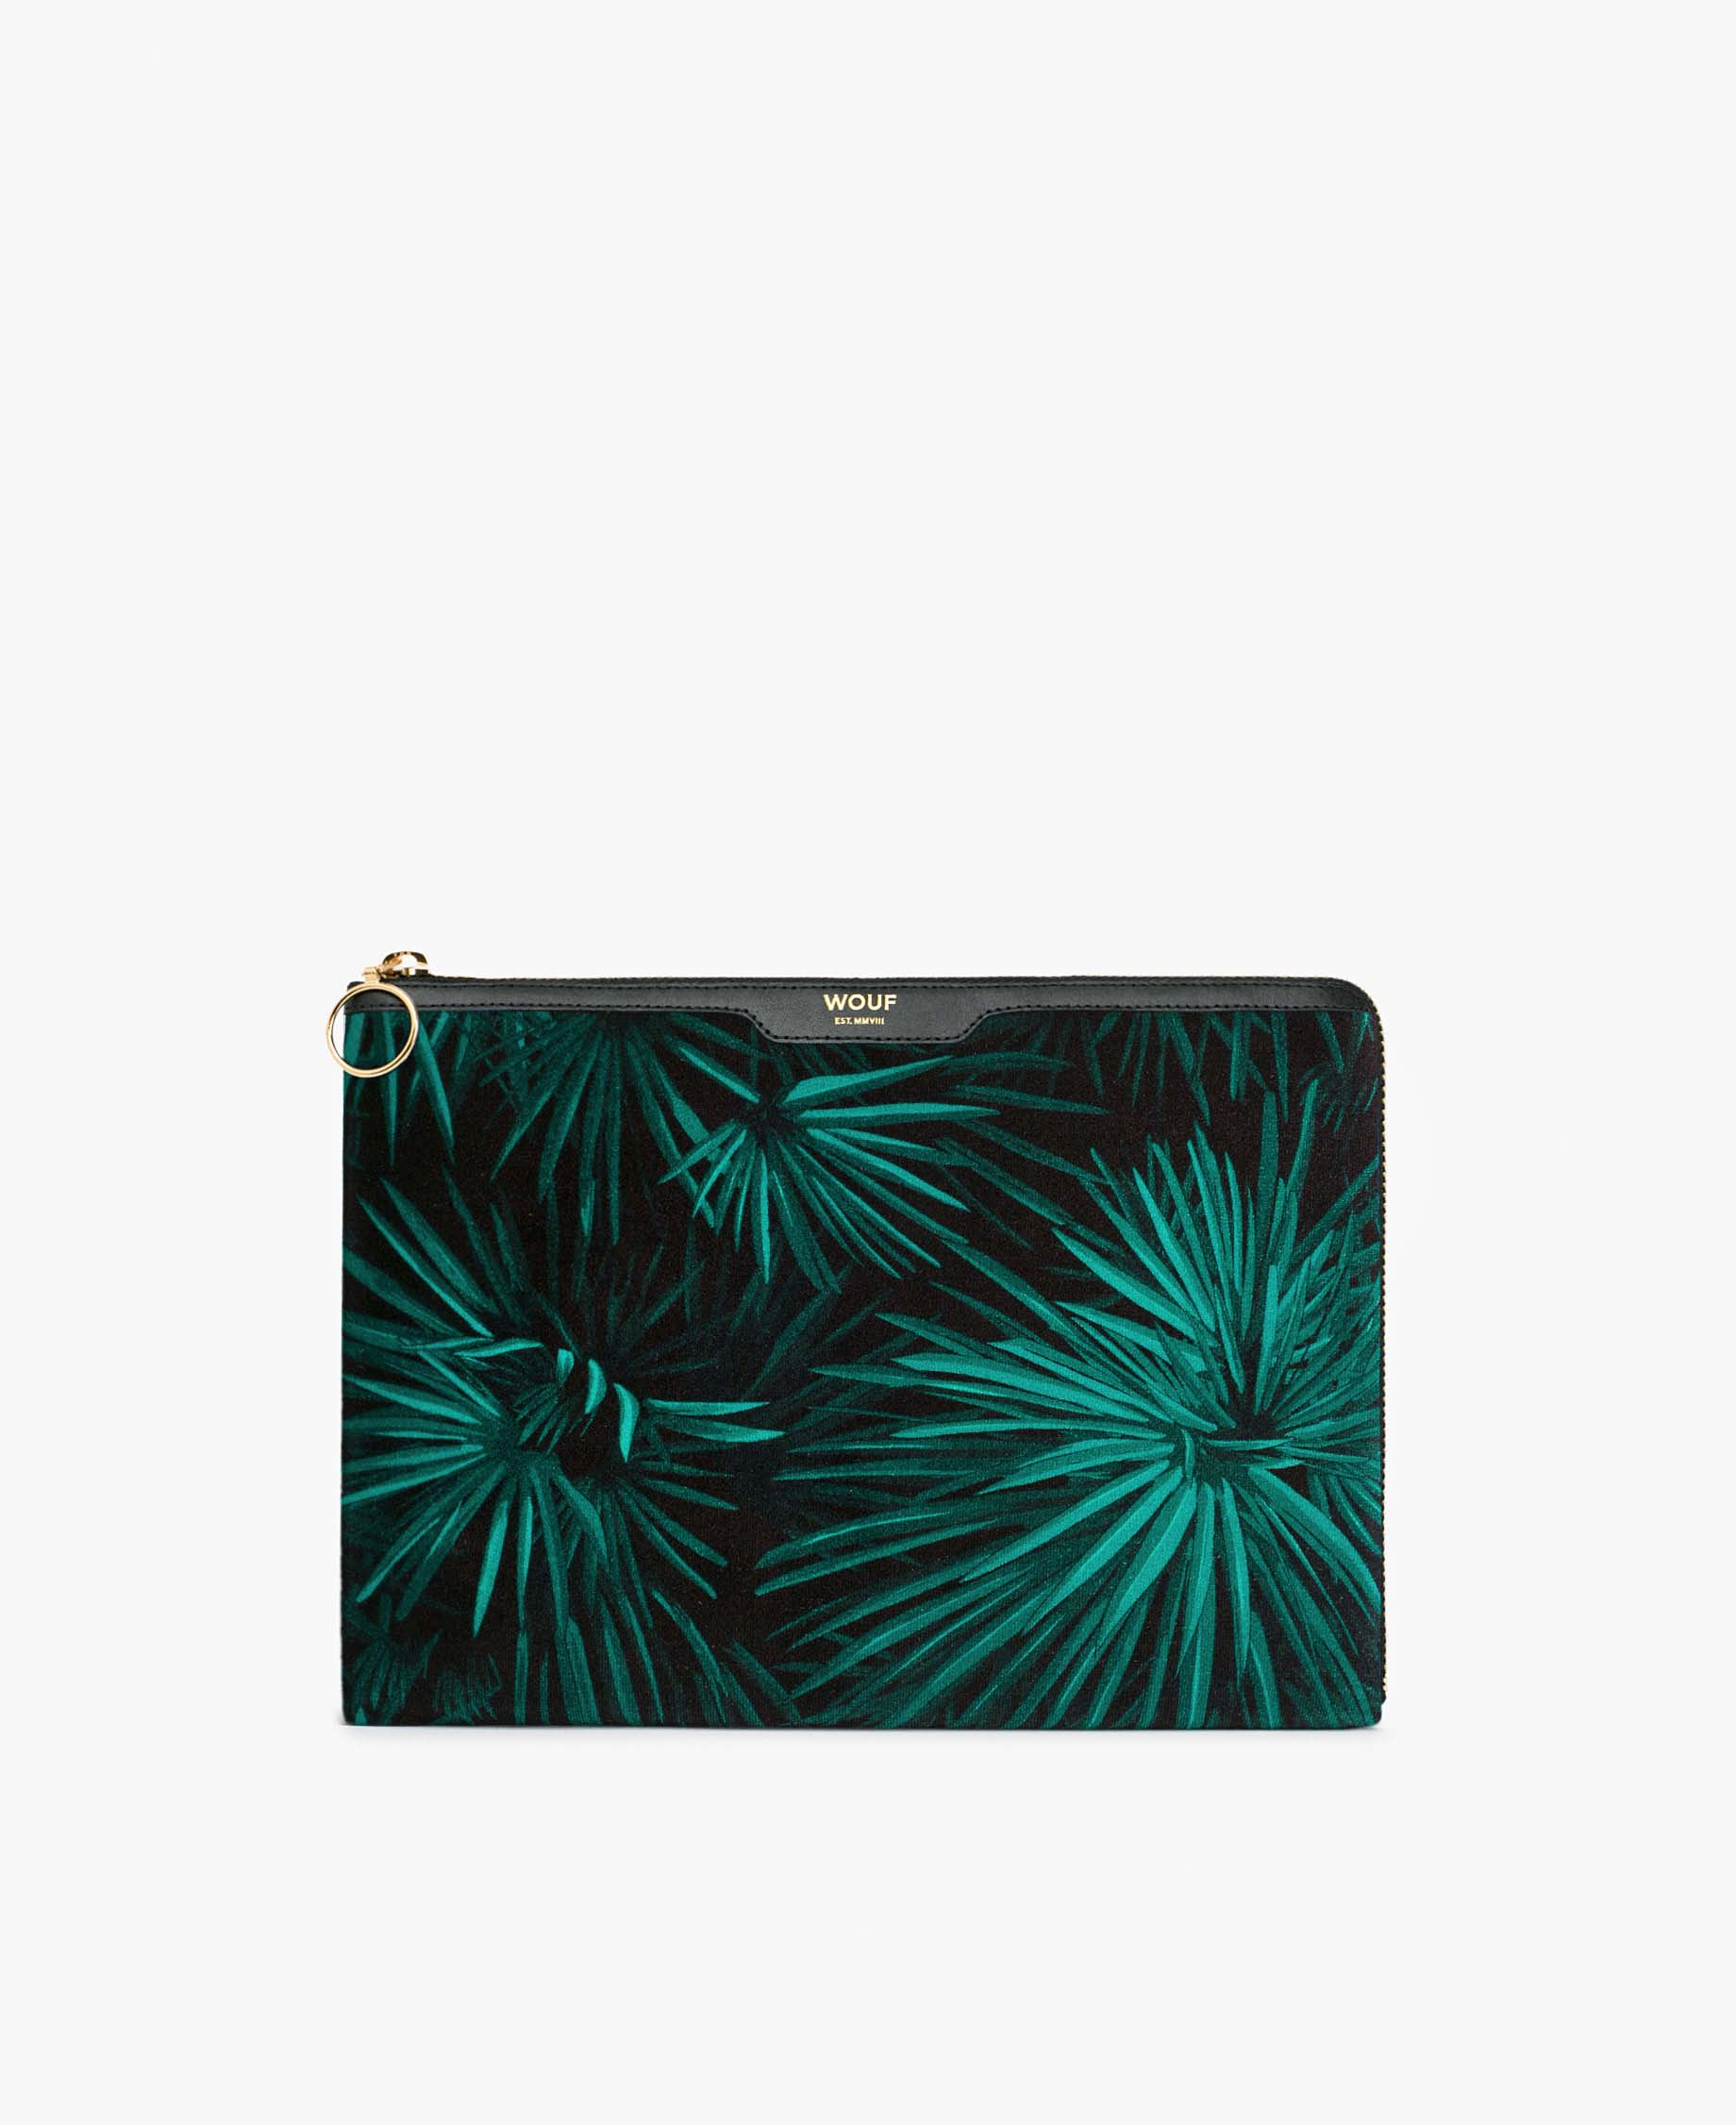 Wouf Amazon Velvet iPad Case